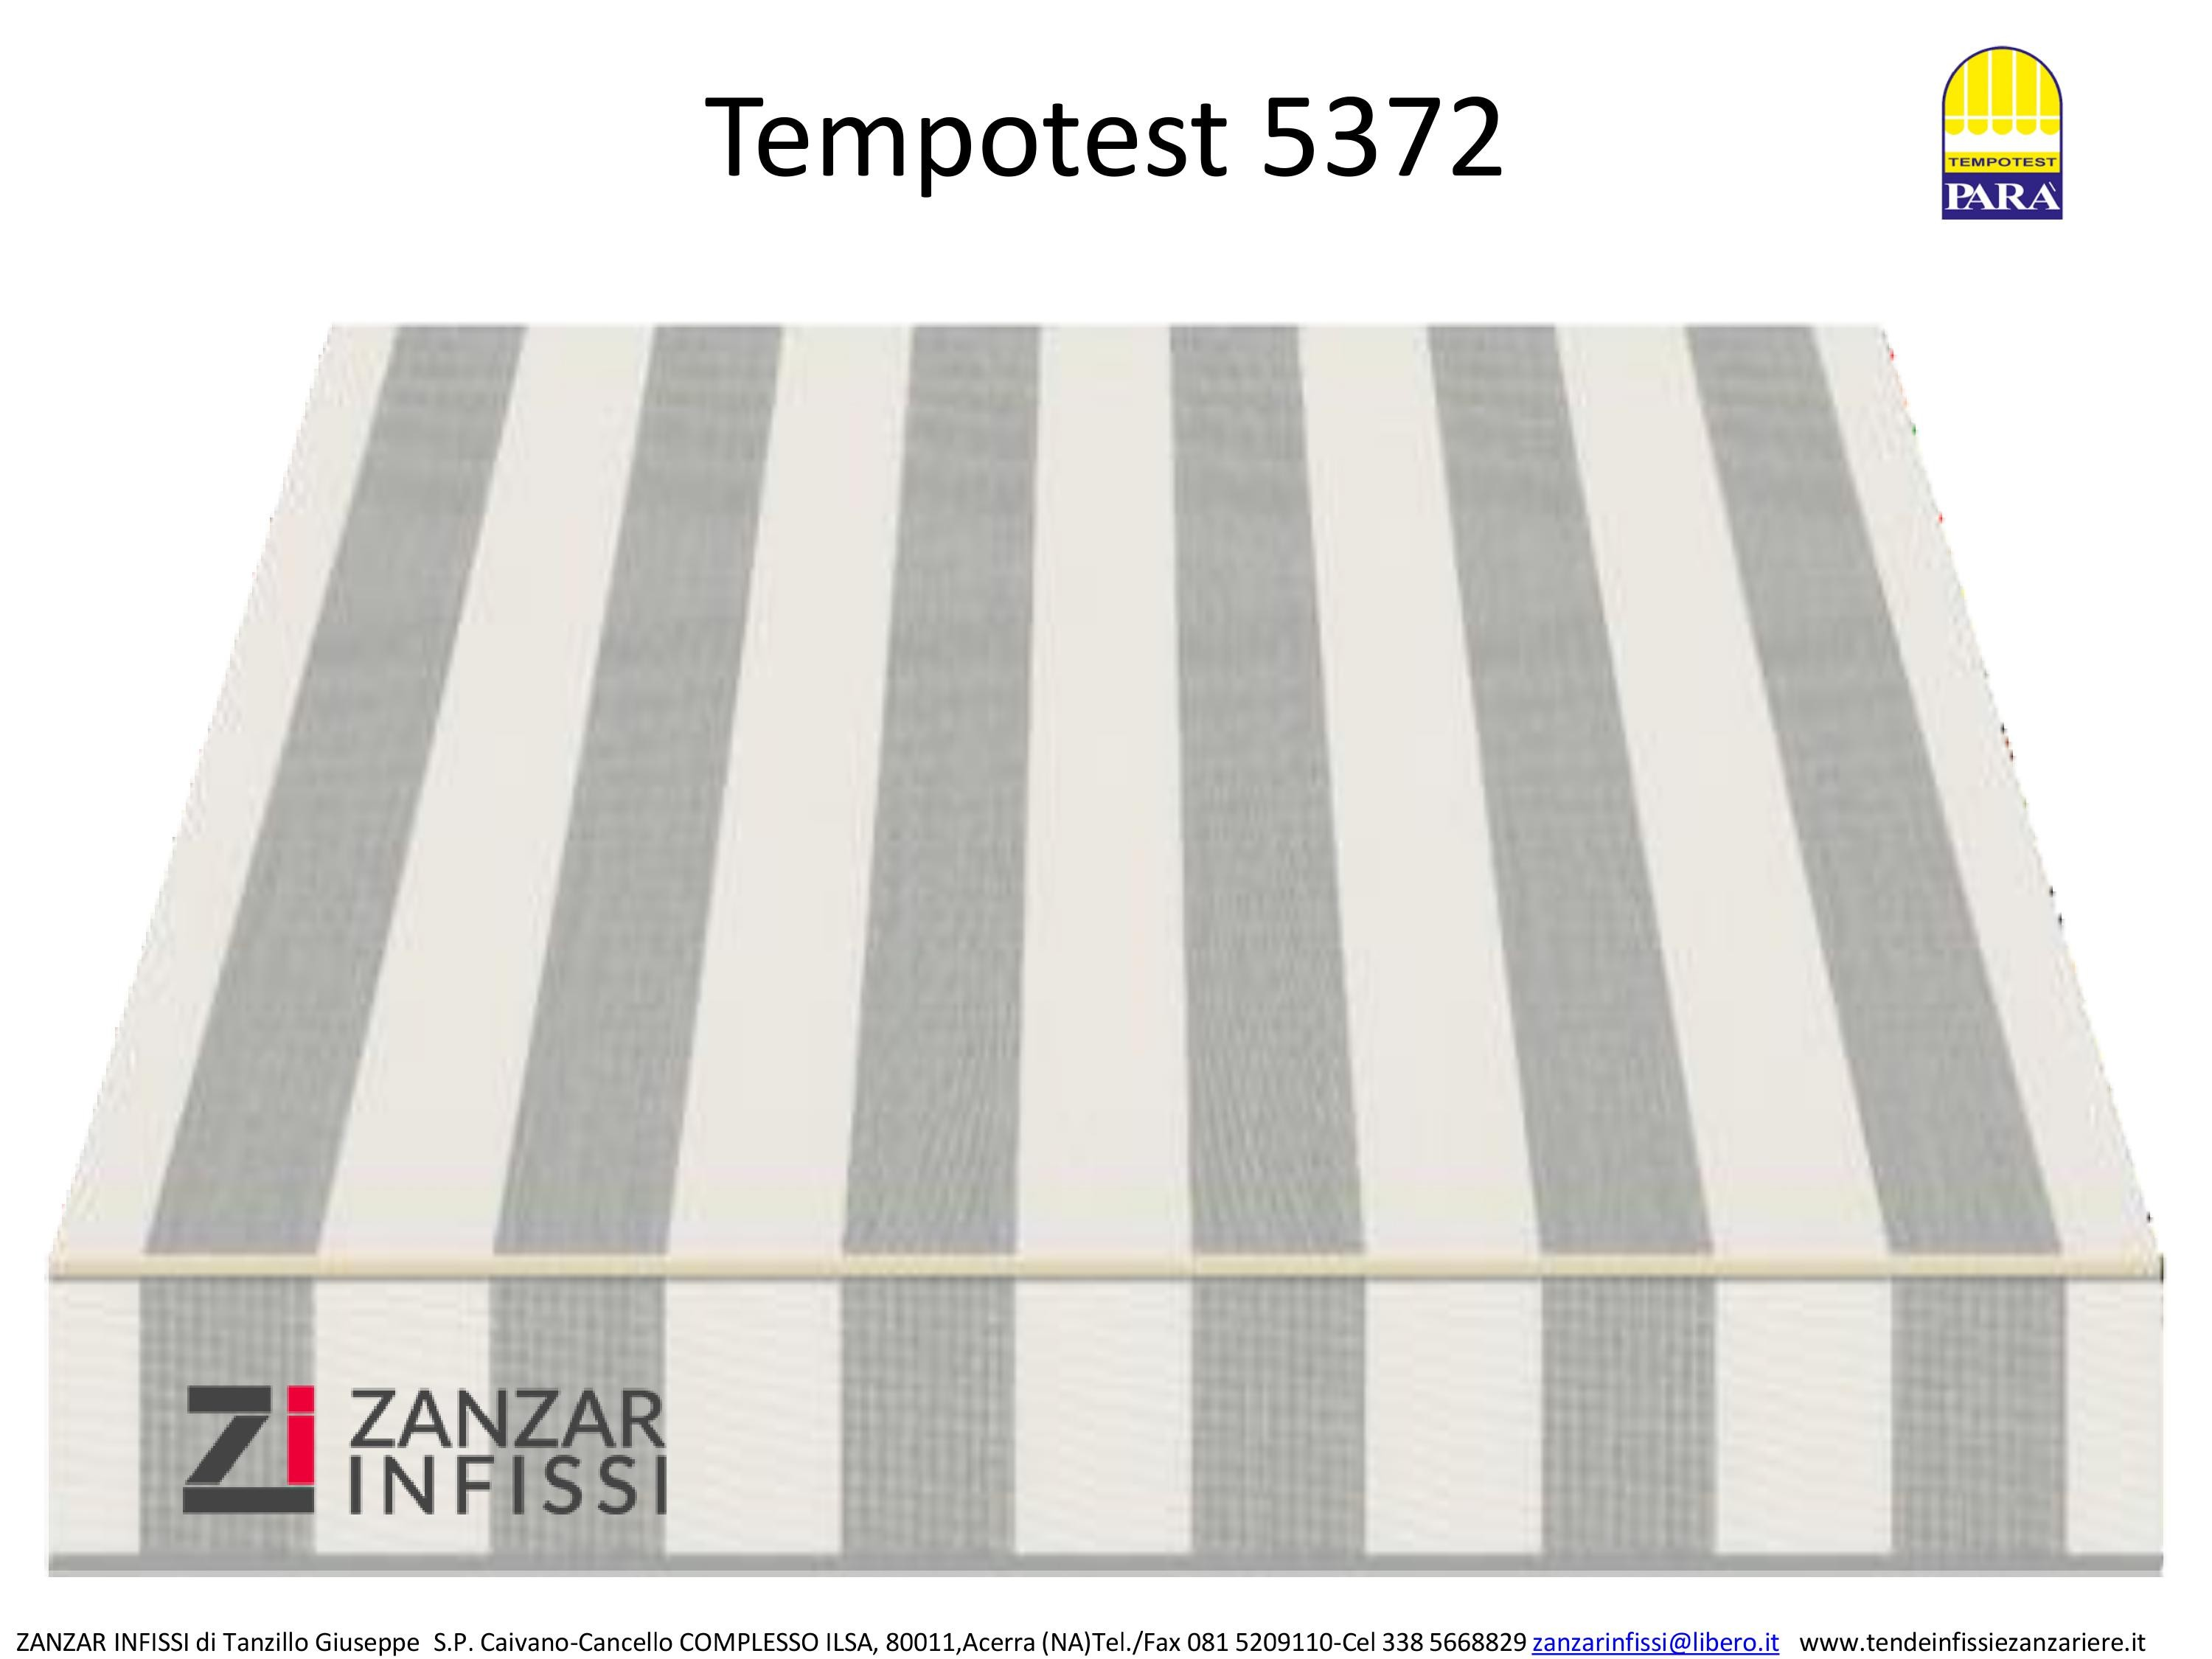 Tempotest 5372